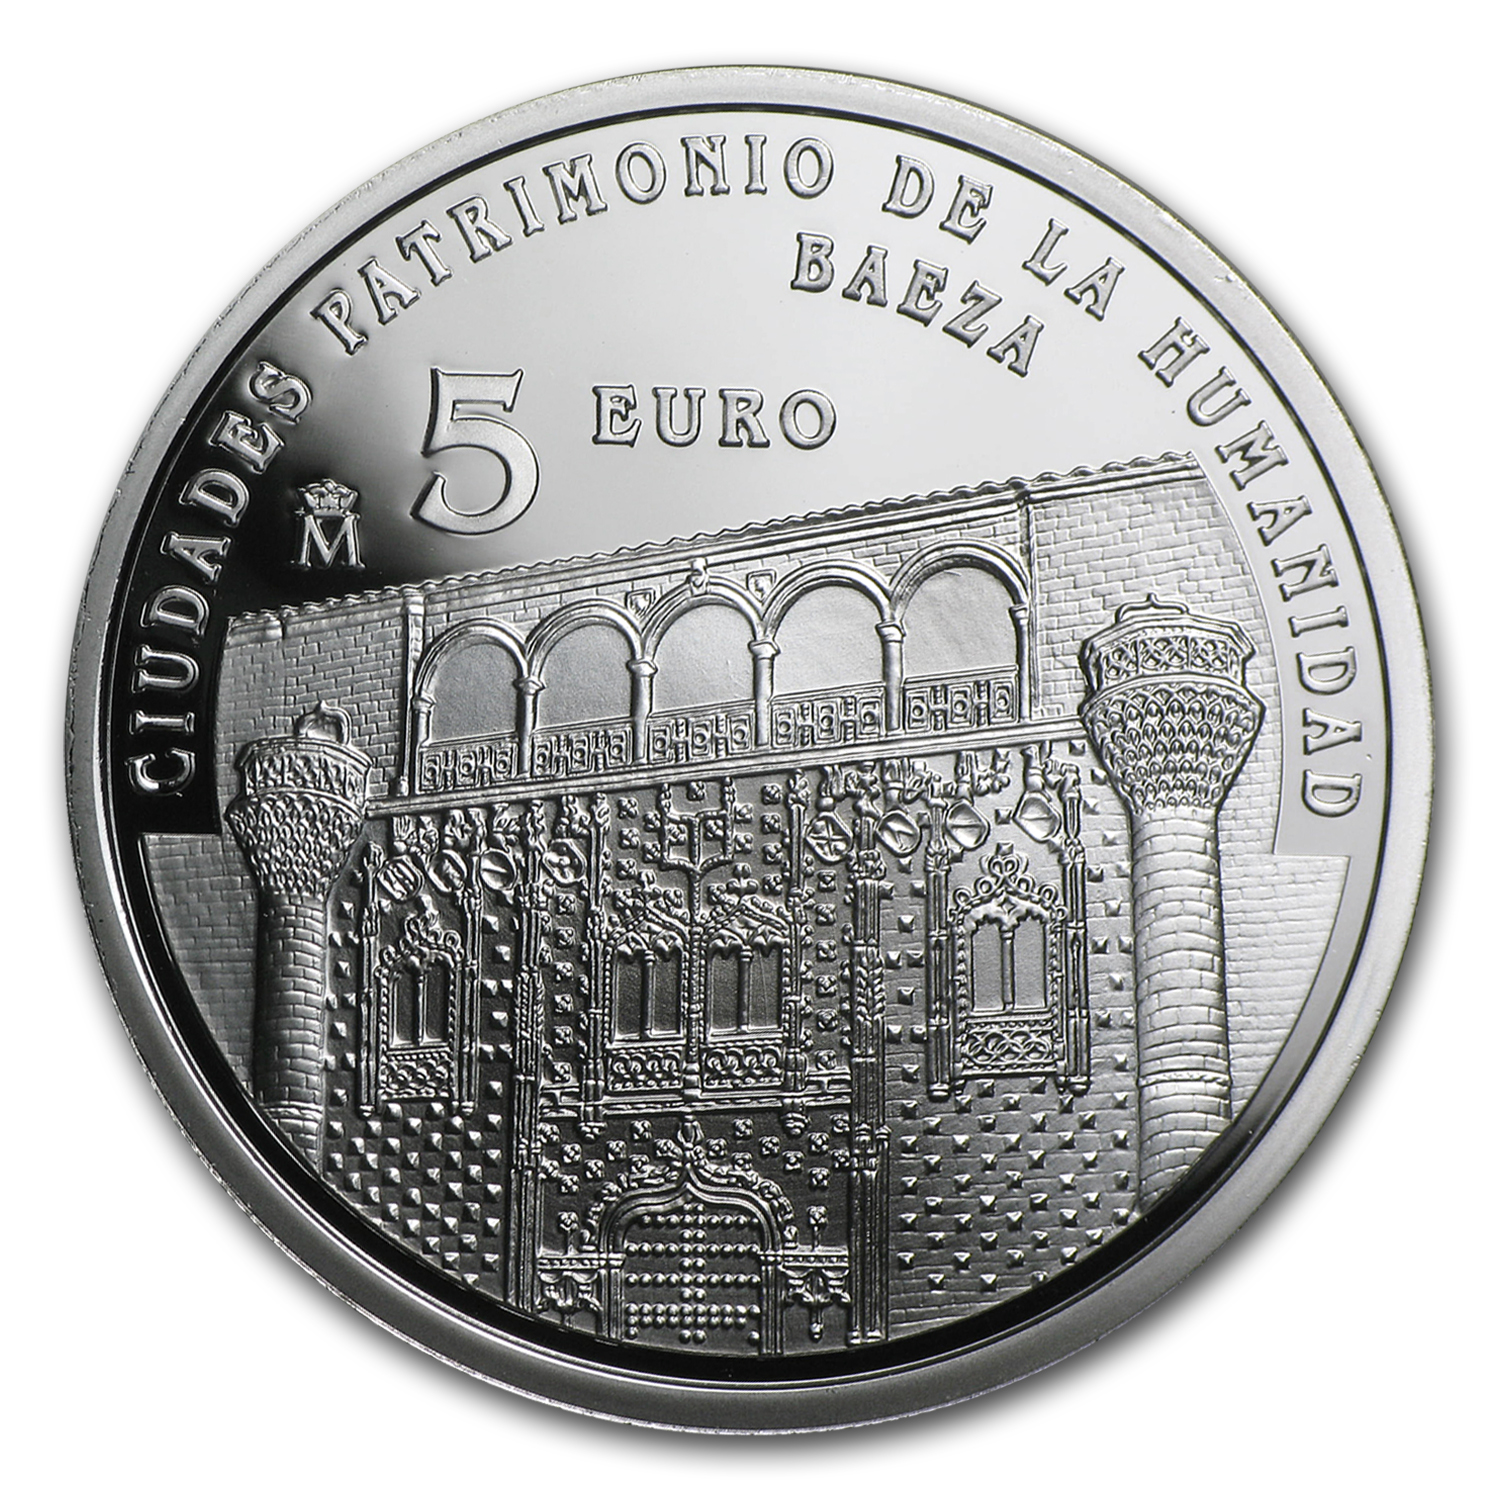 2014 Proof Silver €5 UNESCO Baeza